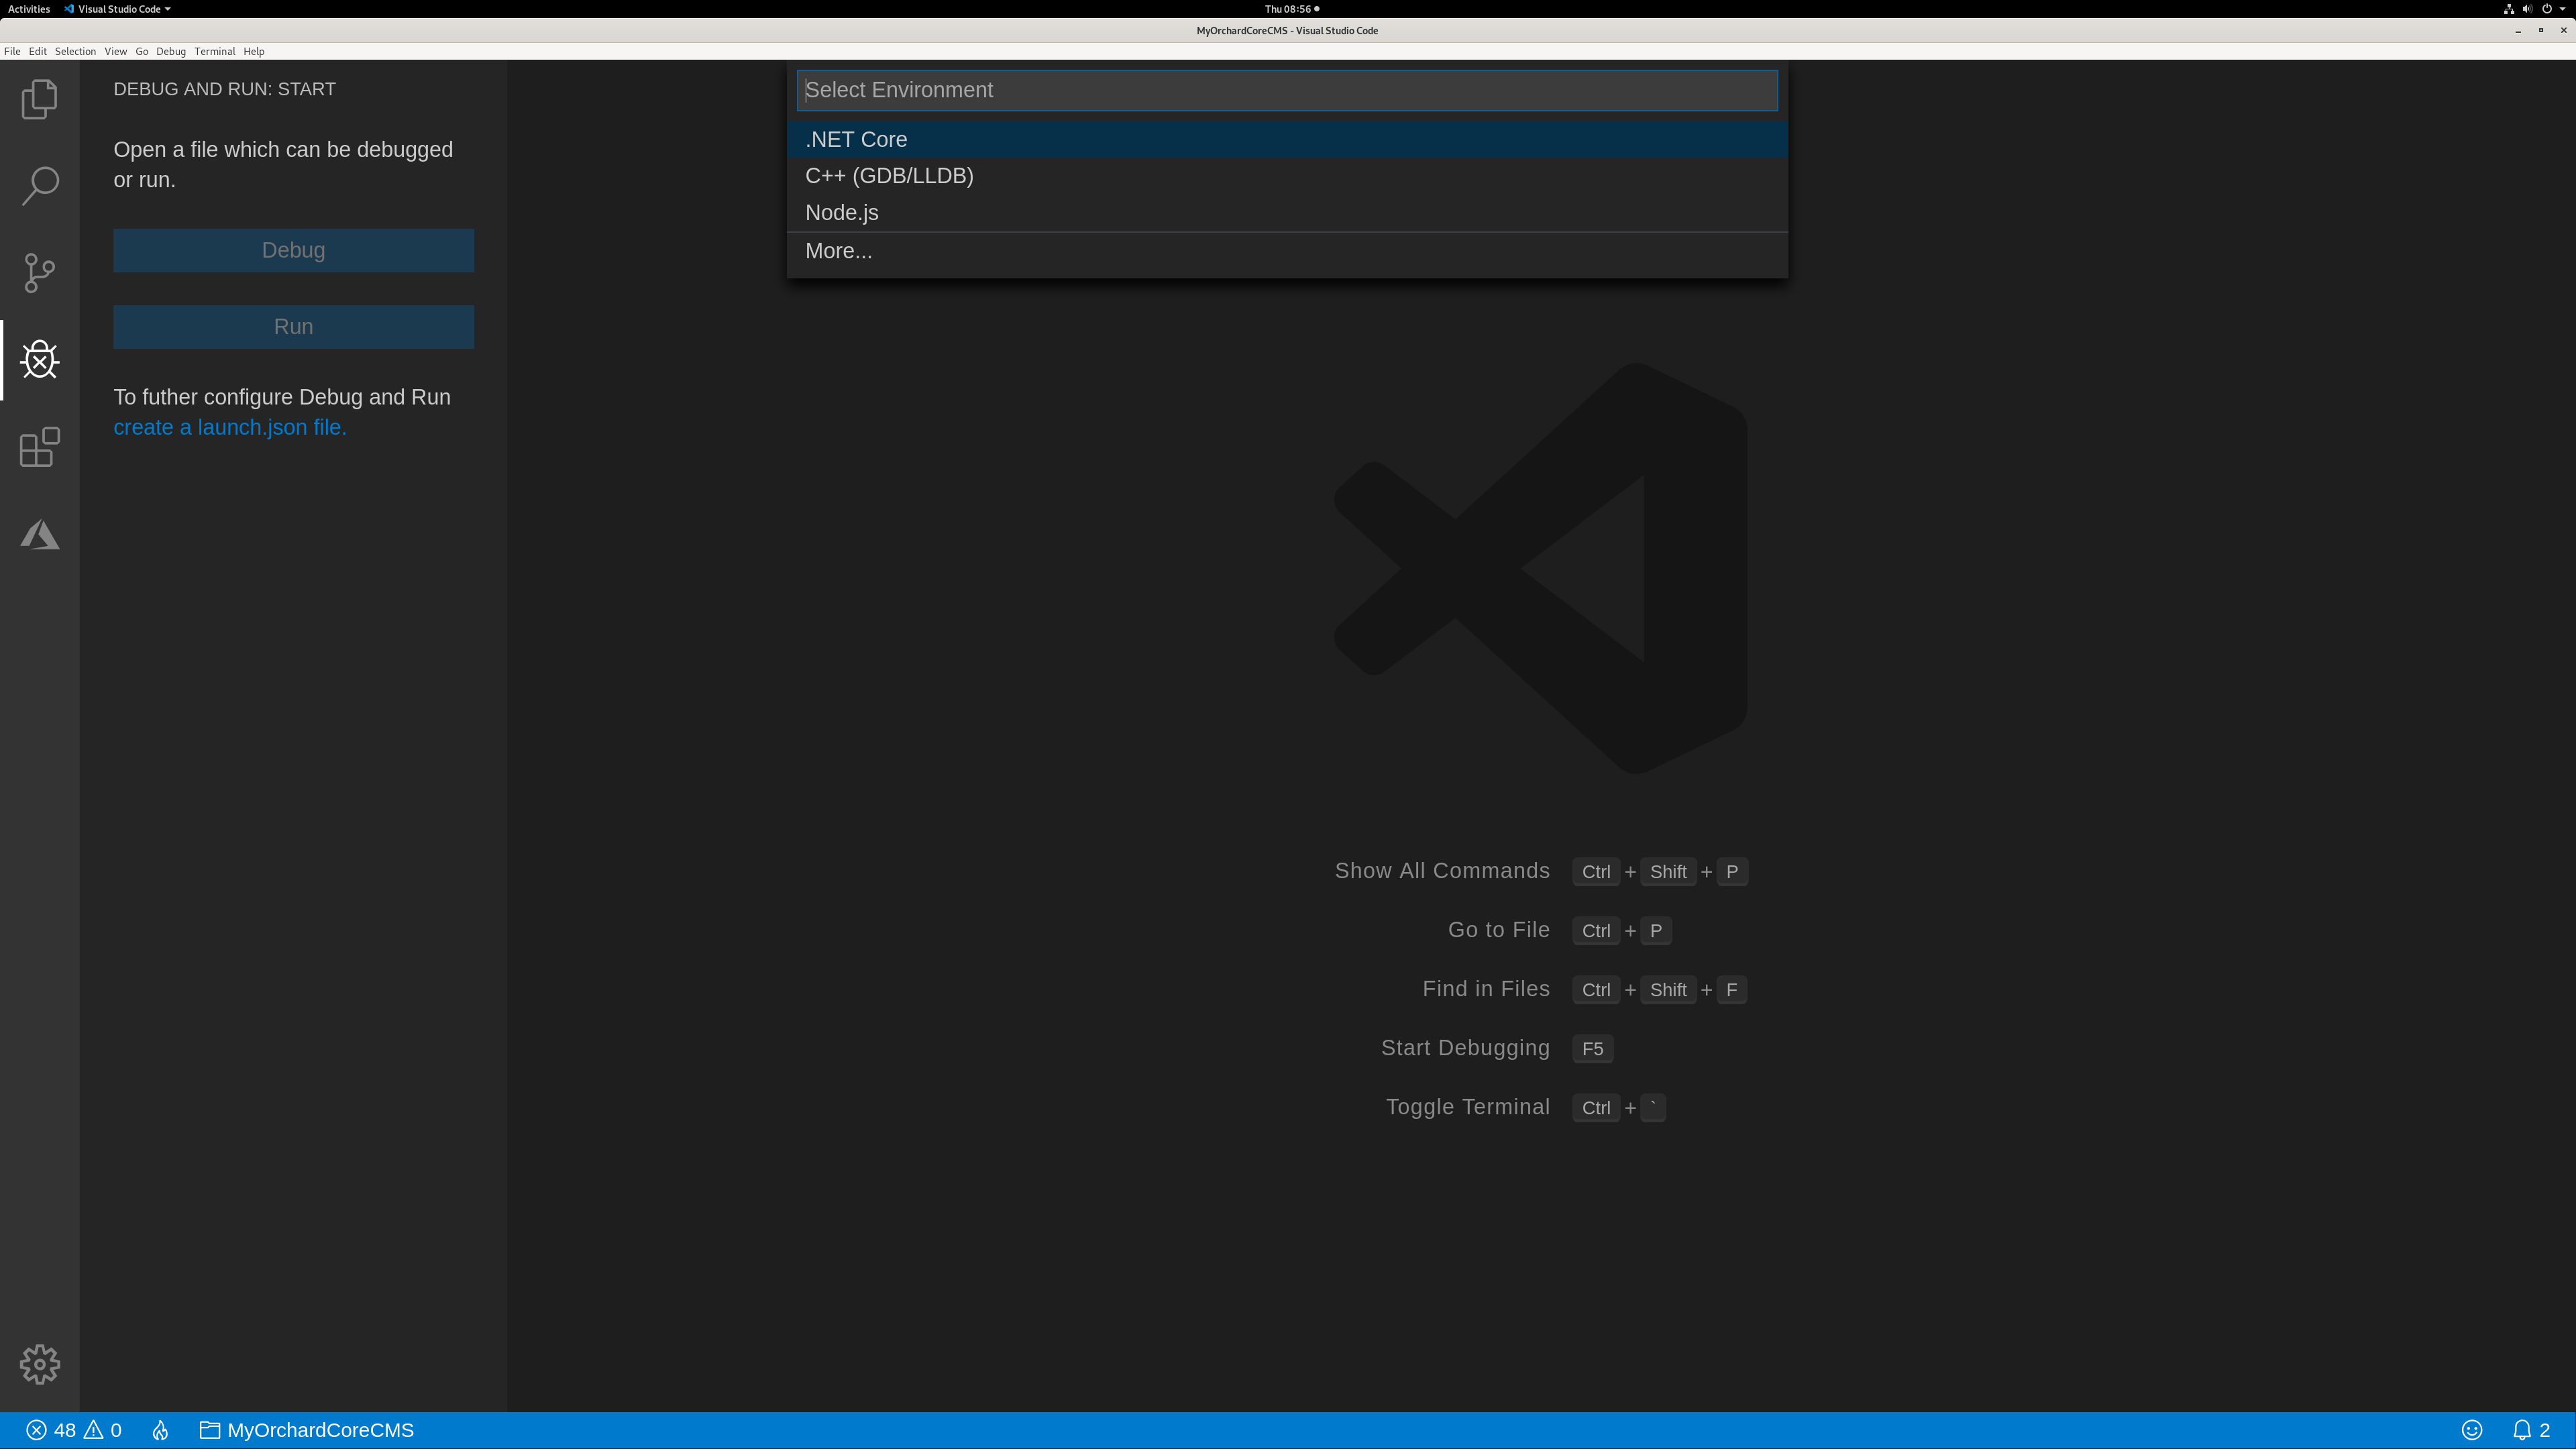 Developing-Orchard-Core-CMS-Applications-Using-Linux-and-VSCode-014